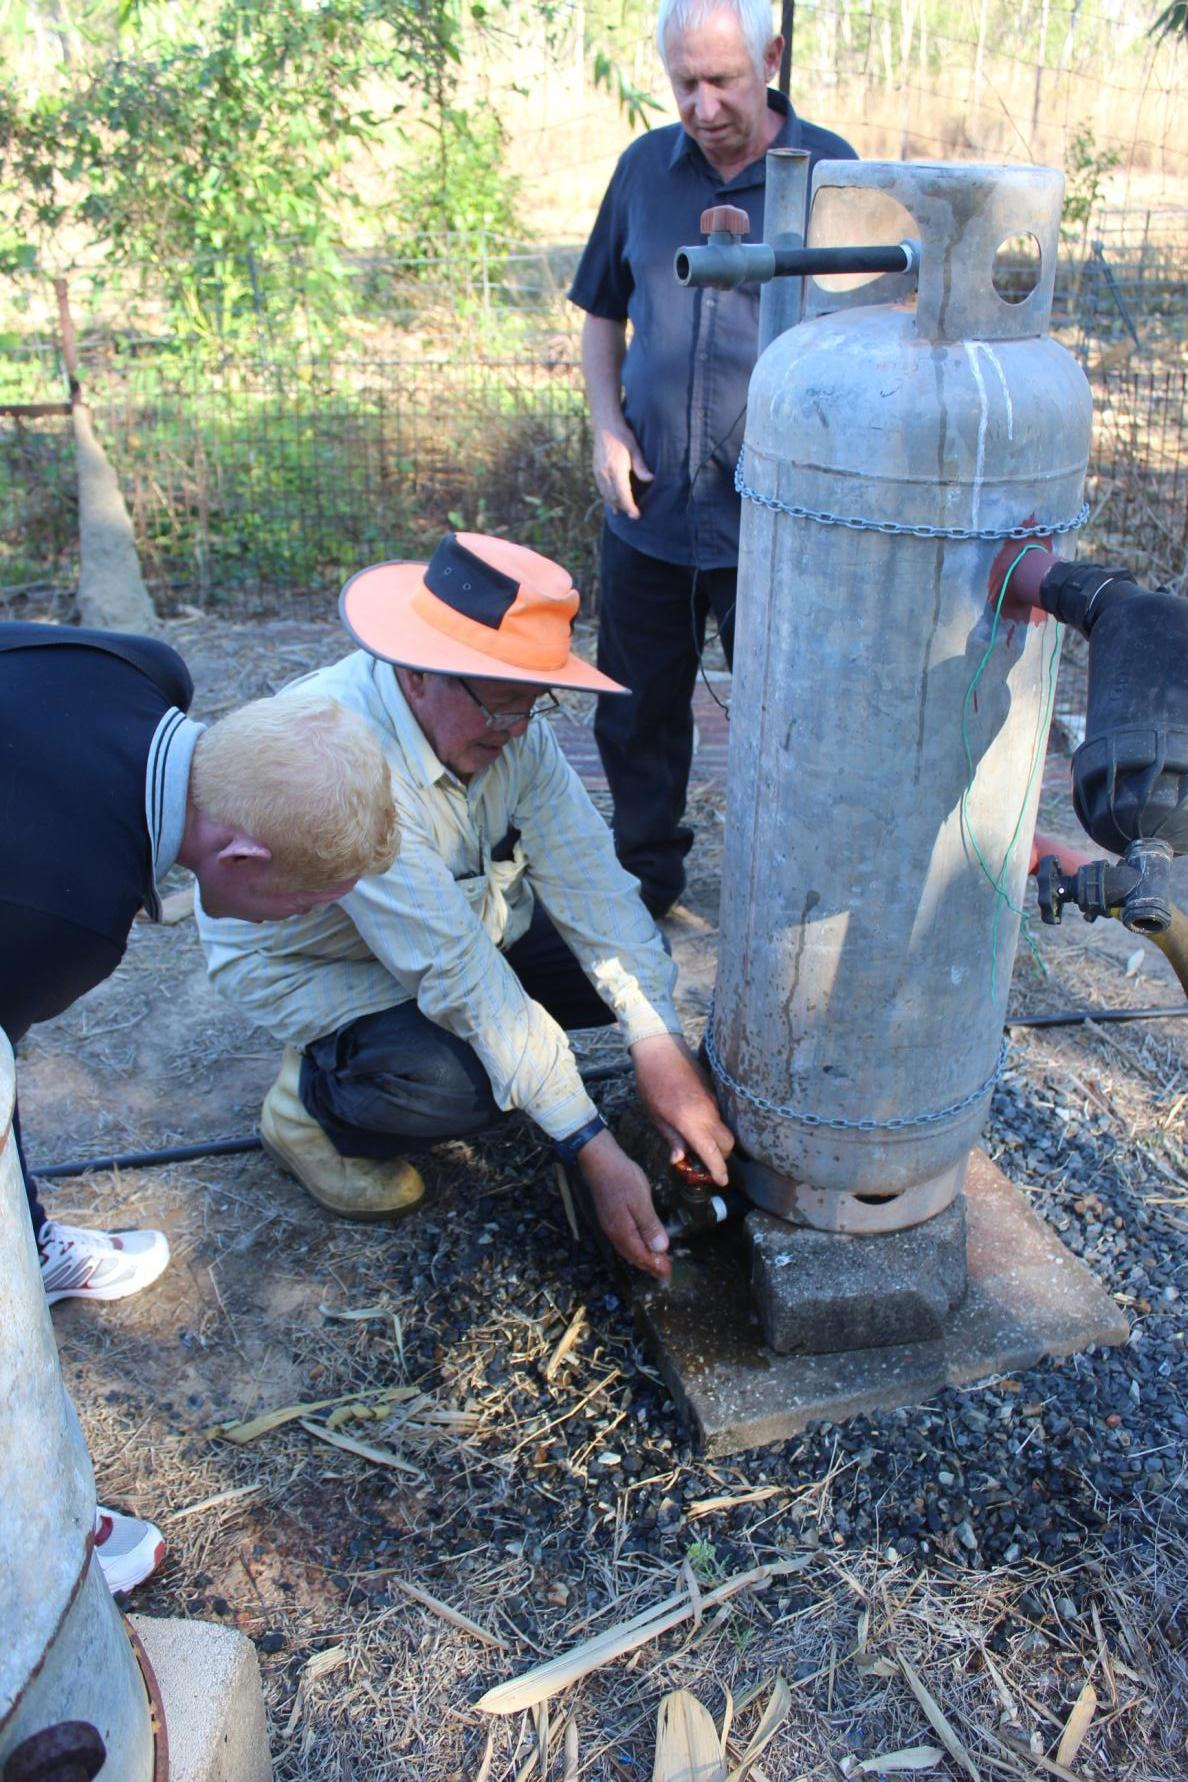 We were shown how to manage and use the water during the dry season.